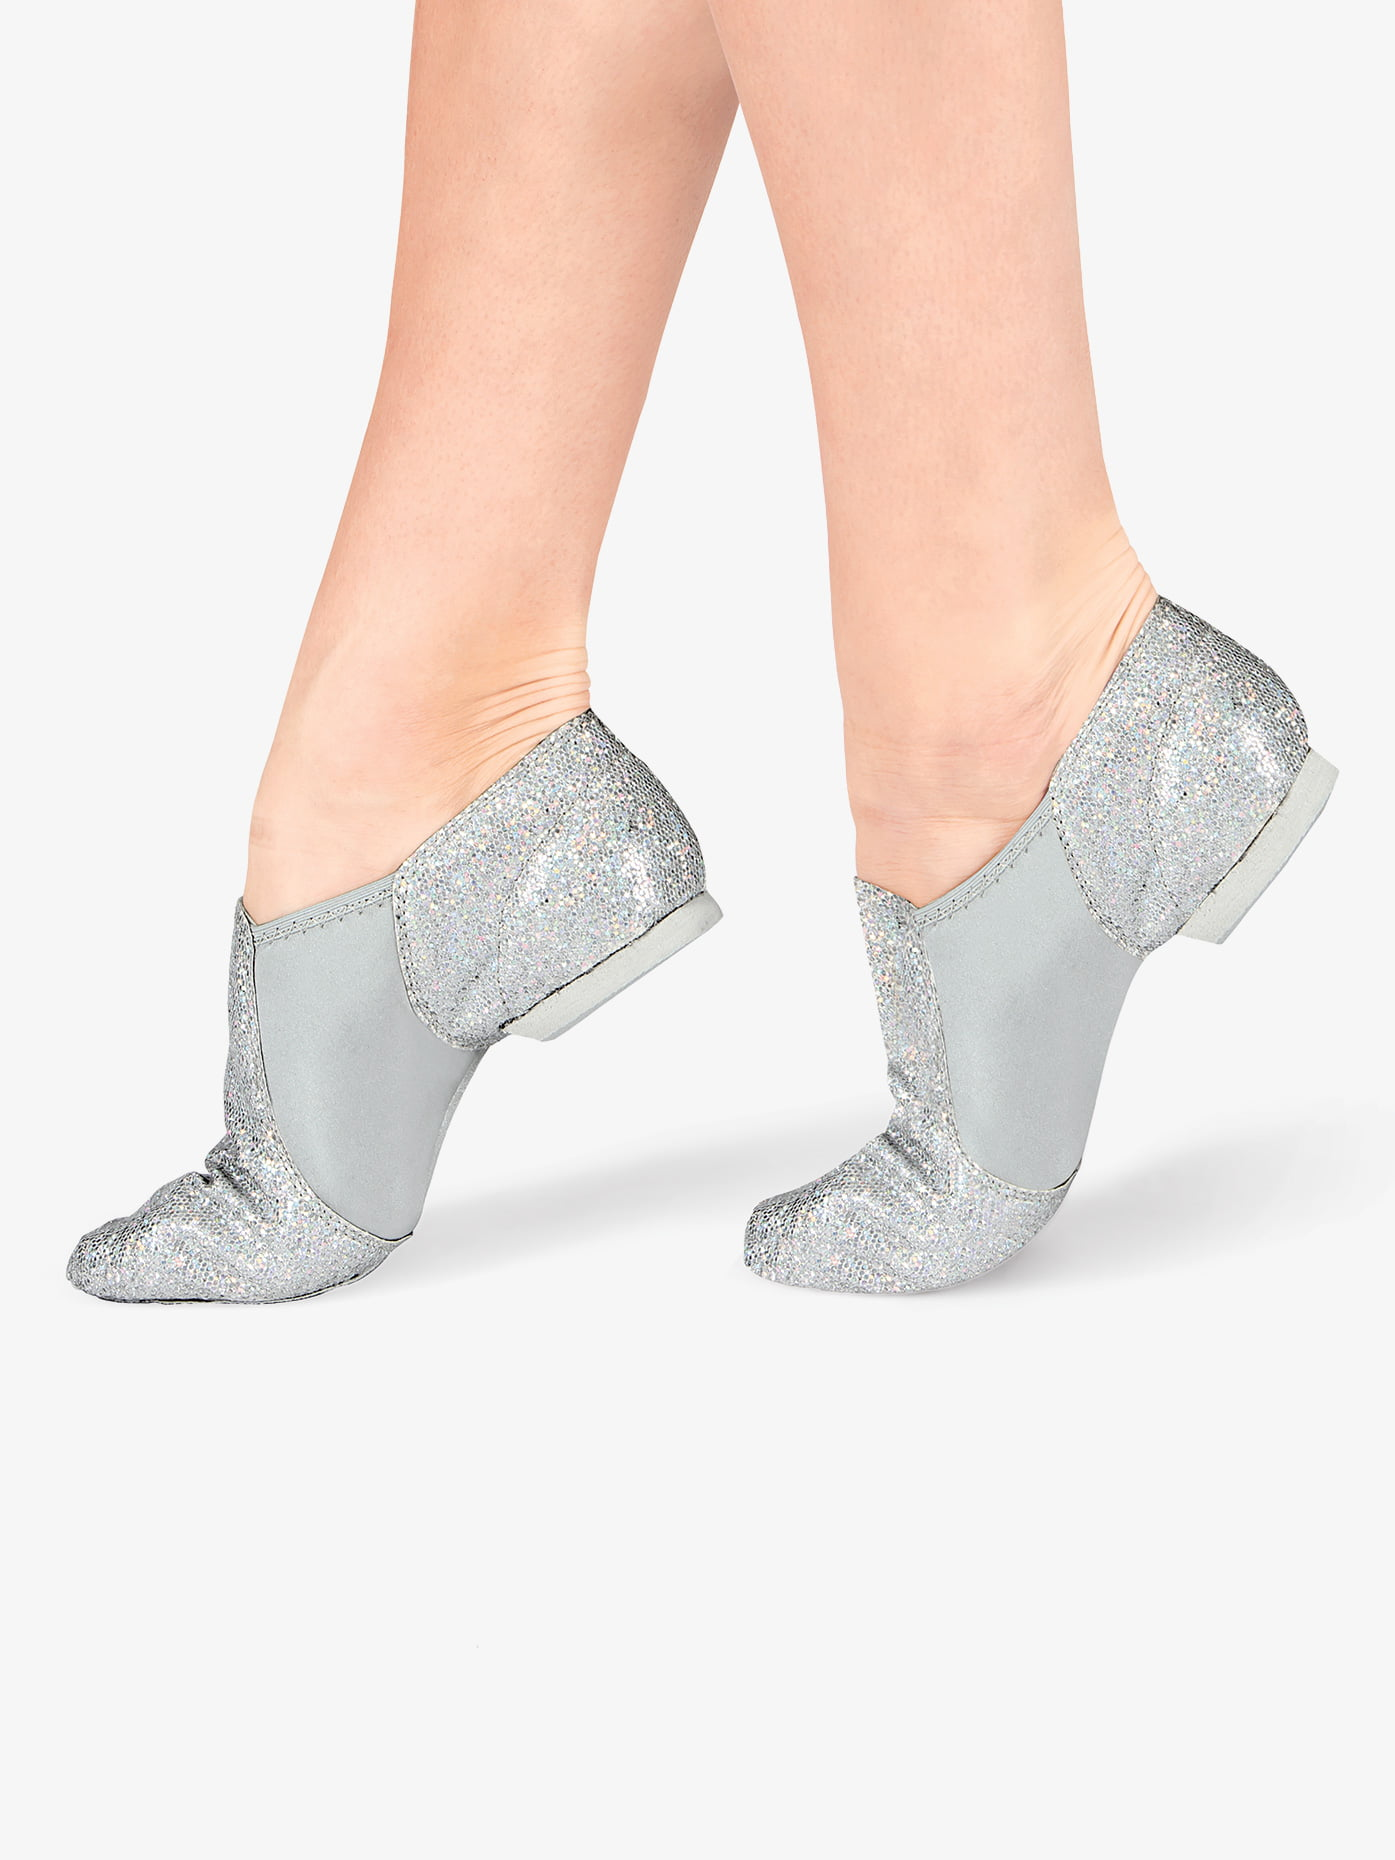 DOUBLEP - Adult Glitter Jazz Shoes